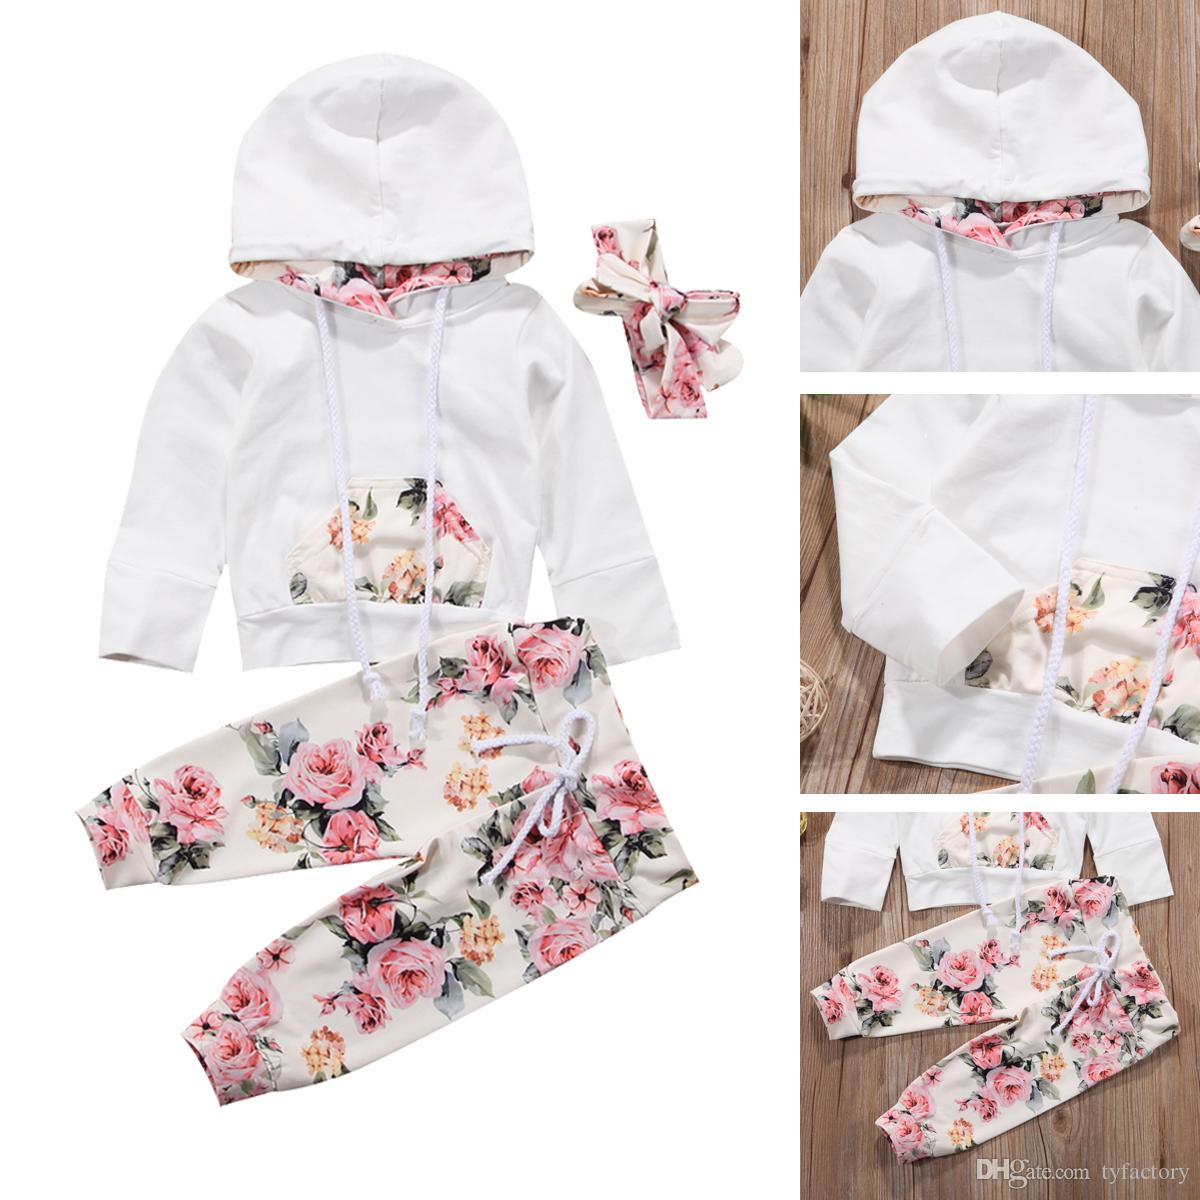 Newborn Toddler Baby Girl Outfit Floral Long Sleeve Top with Trouser Sweatsuit Clothes Set Fall Winter